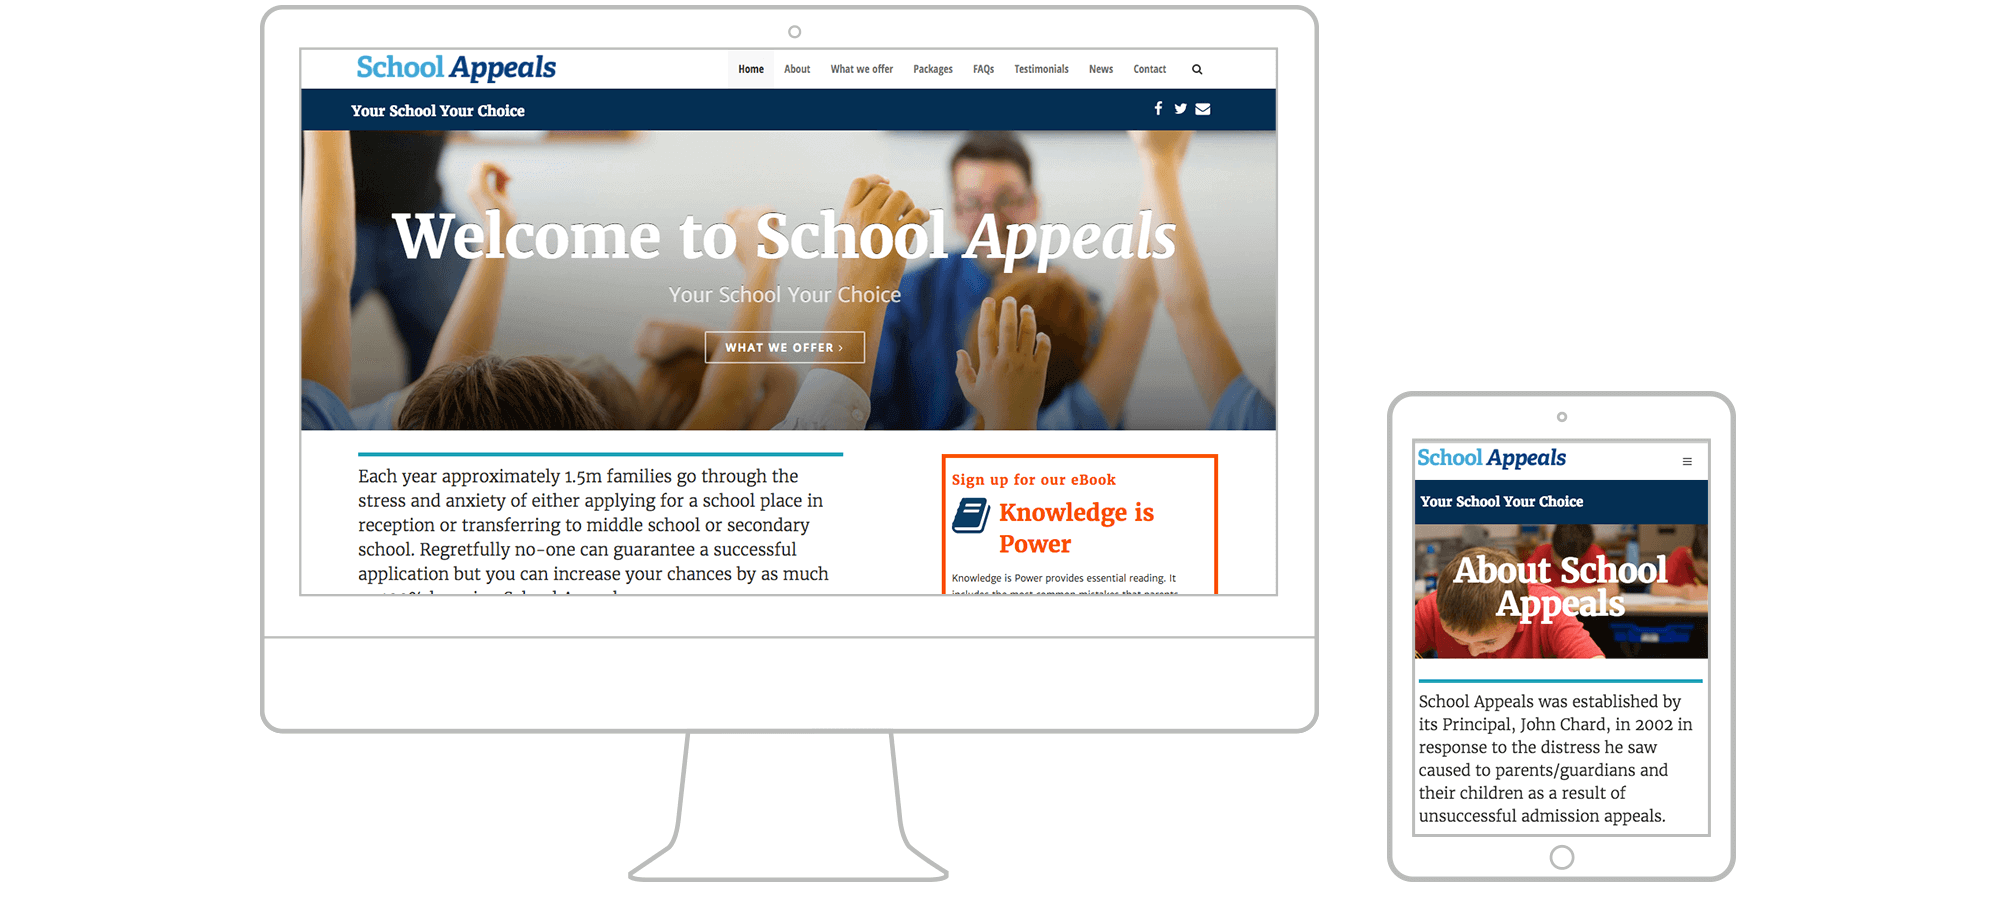 School Appeals responsive website design and content research